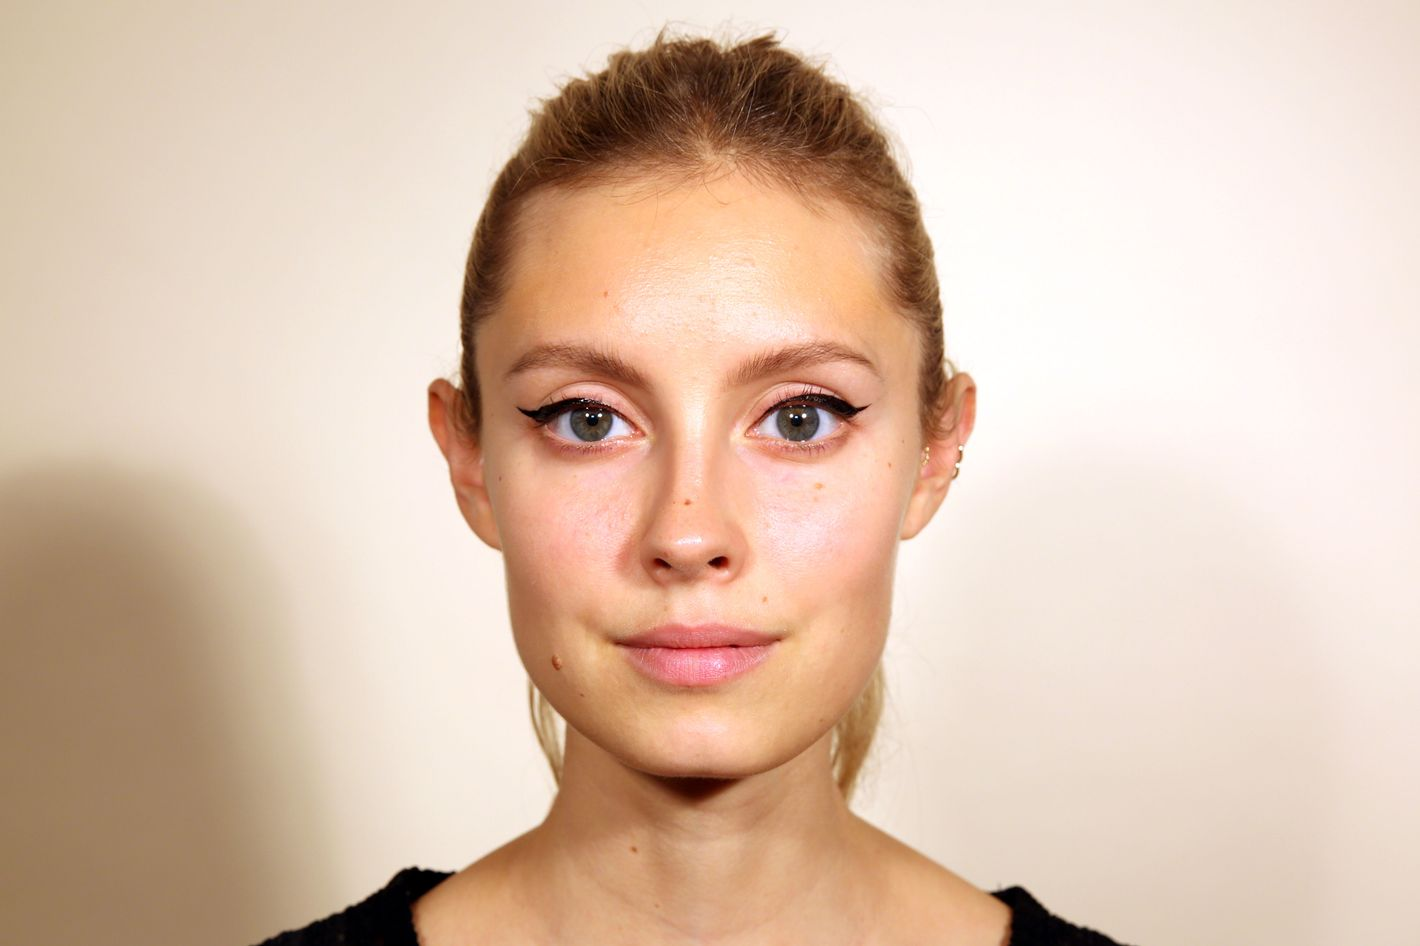 The Trick To Getting The Perfect Cat Eye